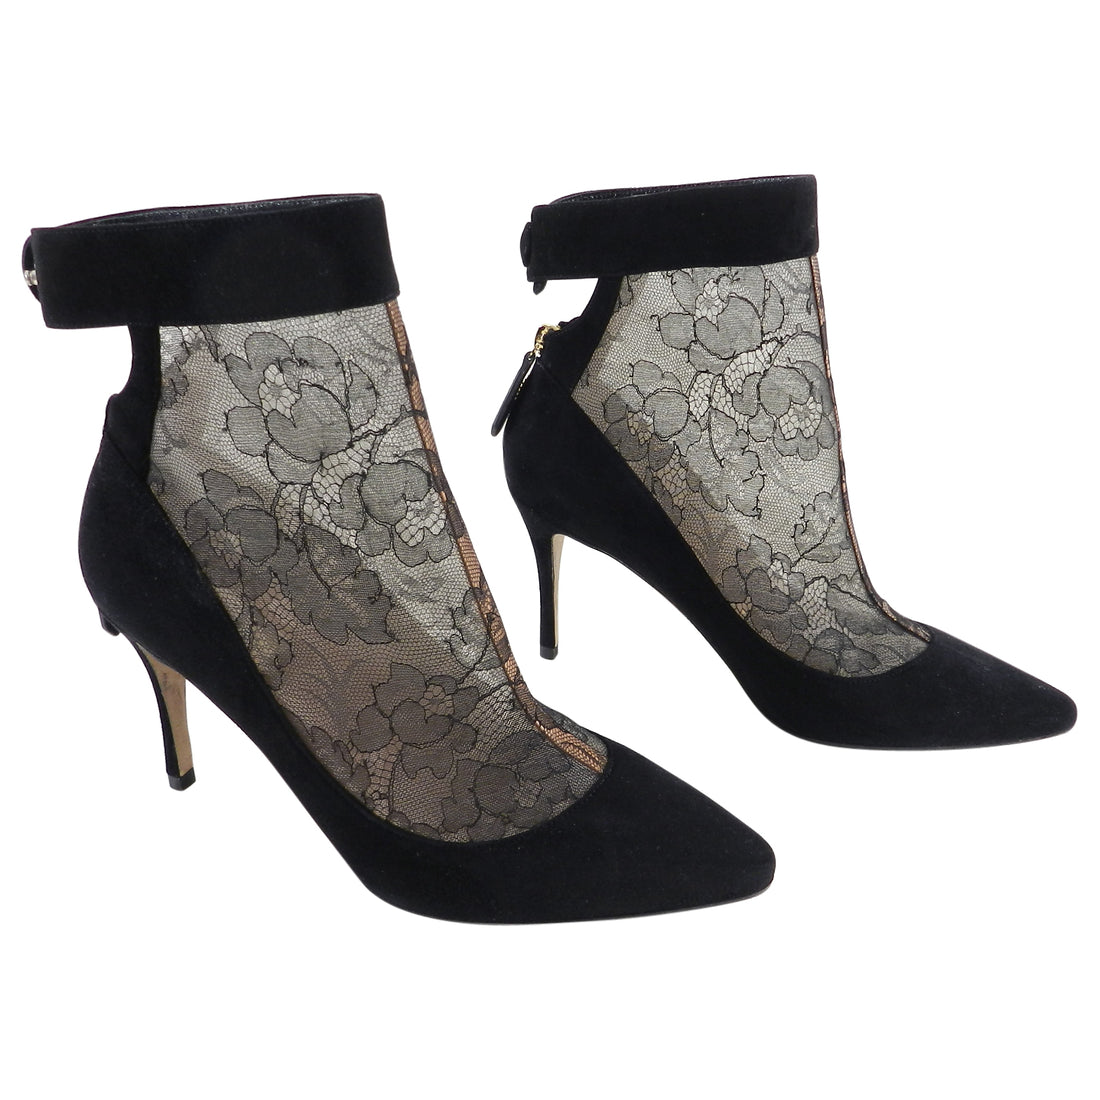 Valentino Black Suede and Lace Inset Ankle Booties - 40